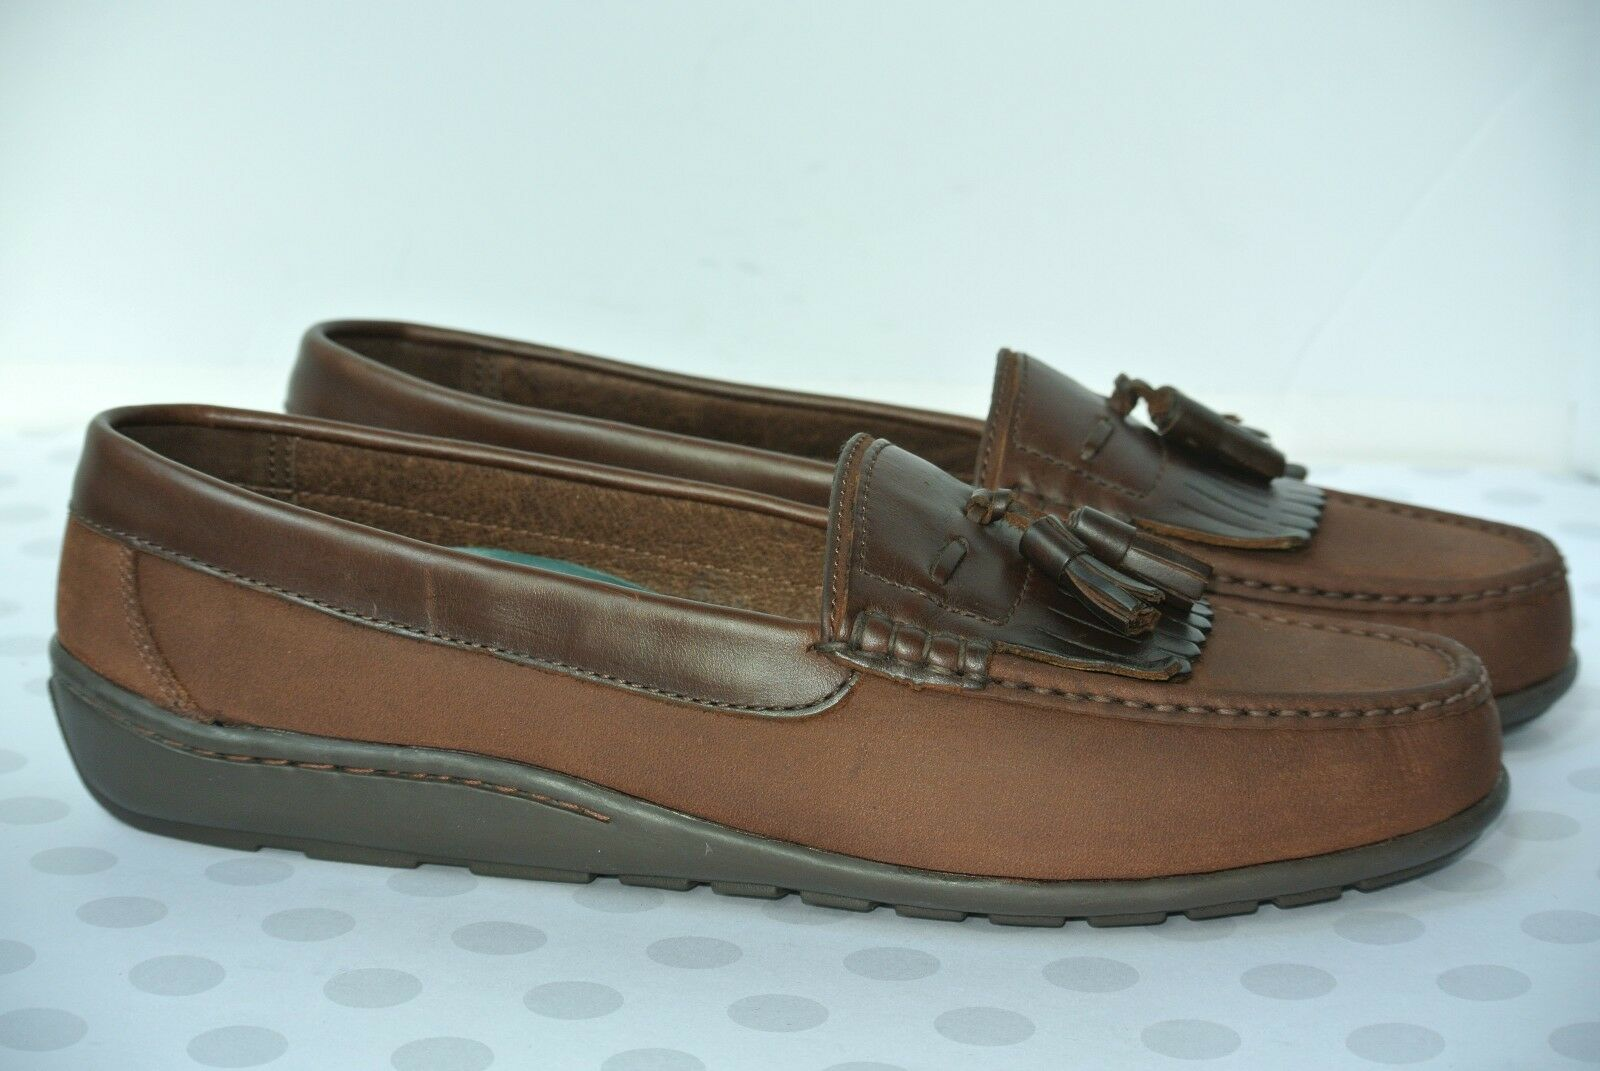 a4671d994e7 NEW Florsheim Comfortech Mens Sz 12 D Brown Tassel Dress Casual Slip On  Loafers